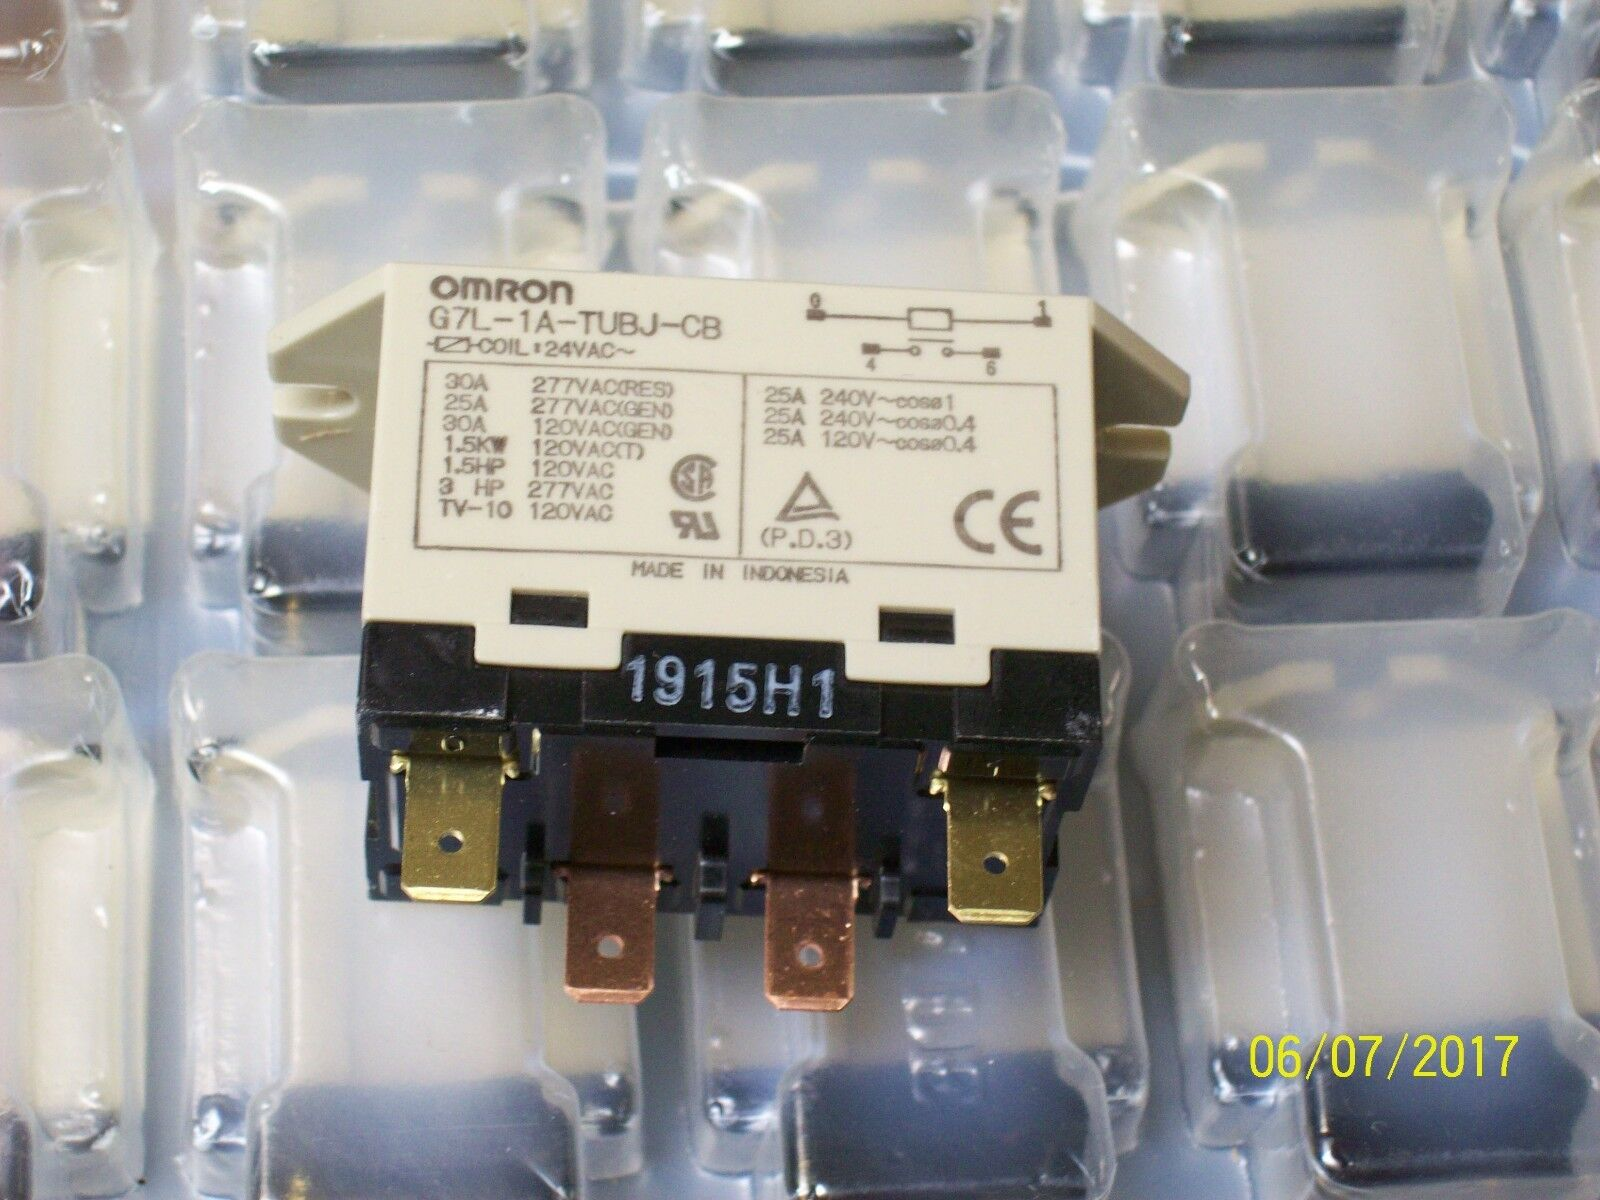 New Omron Relay 24vac G7l A1 Tubj Cb 1750 Picclick Power 1 Of 2only 4 Available See More